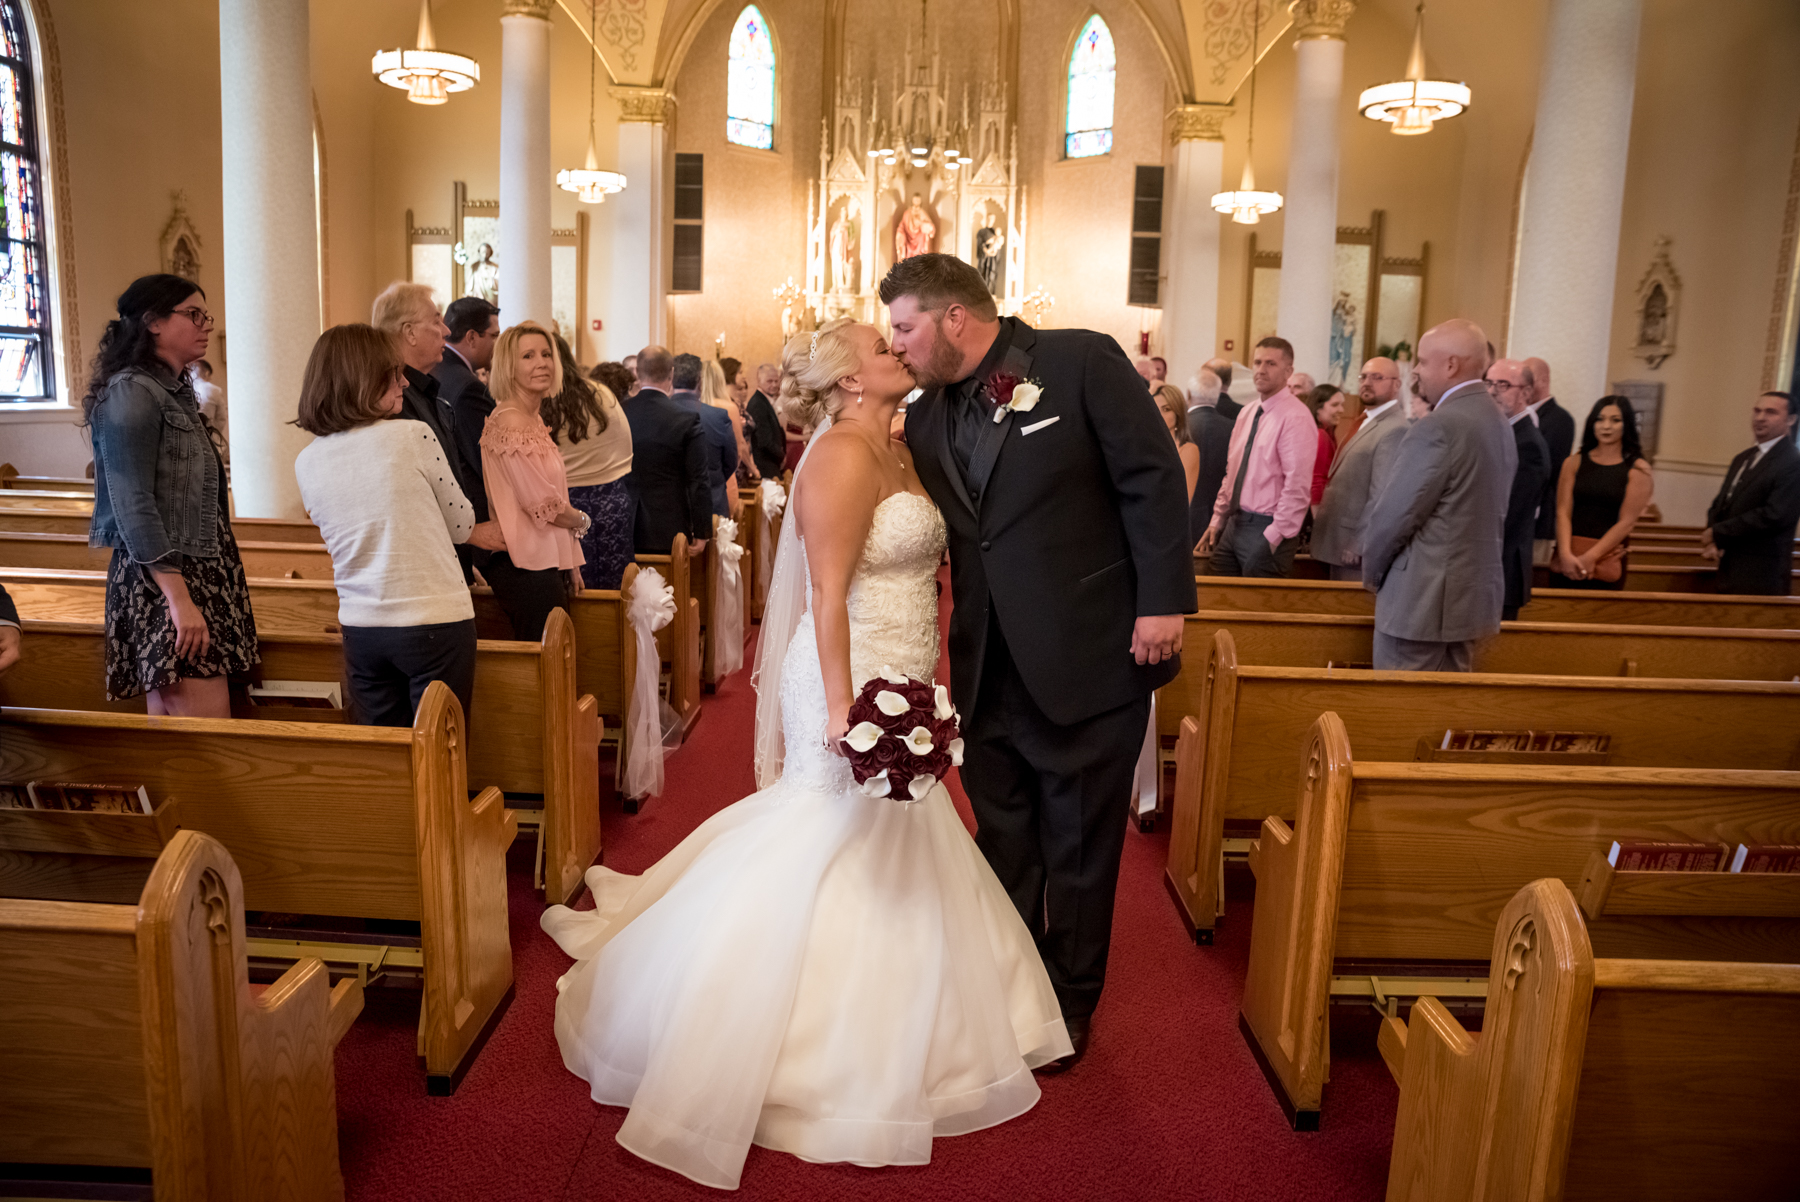 Kristi & Mark – Wilkes-Barre, PA